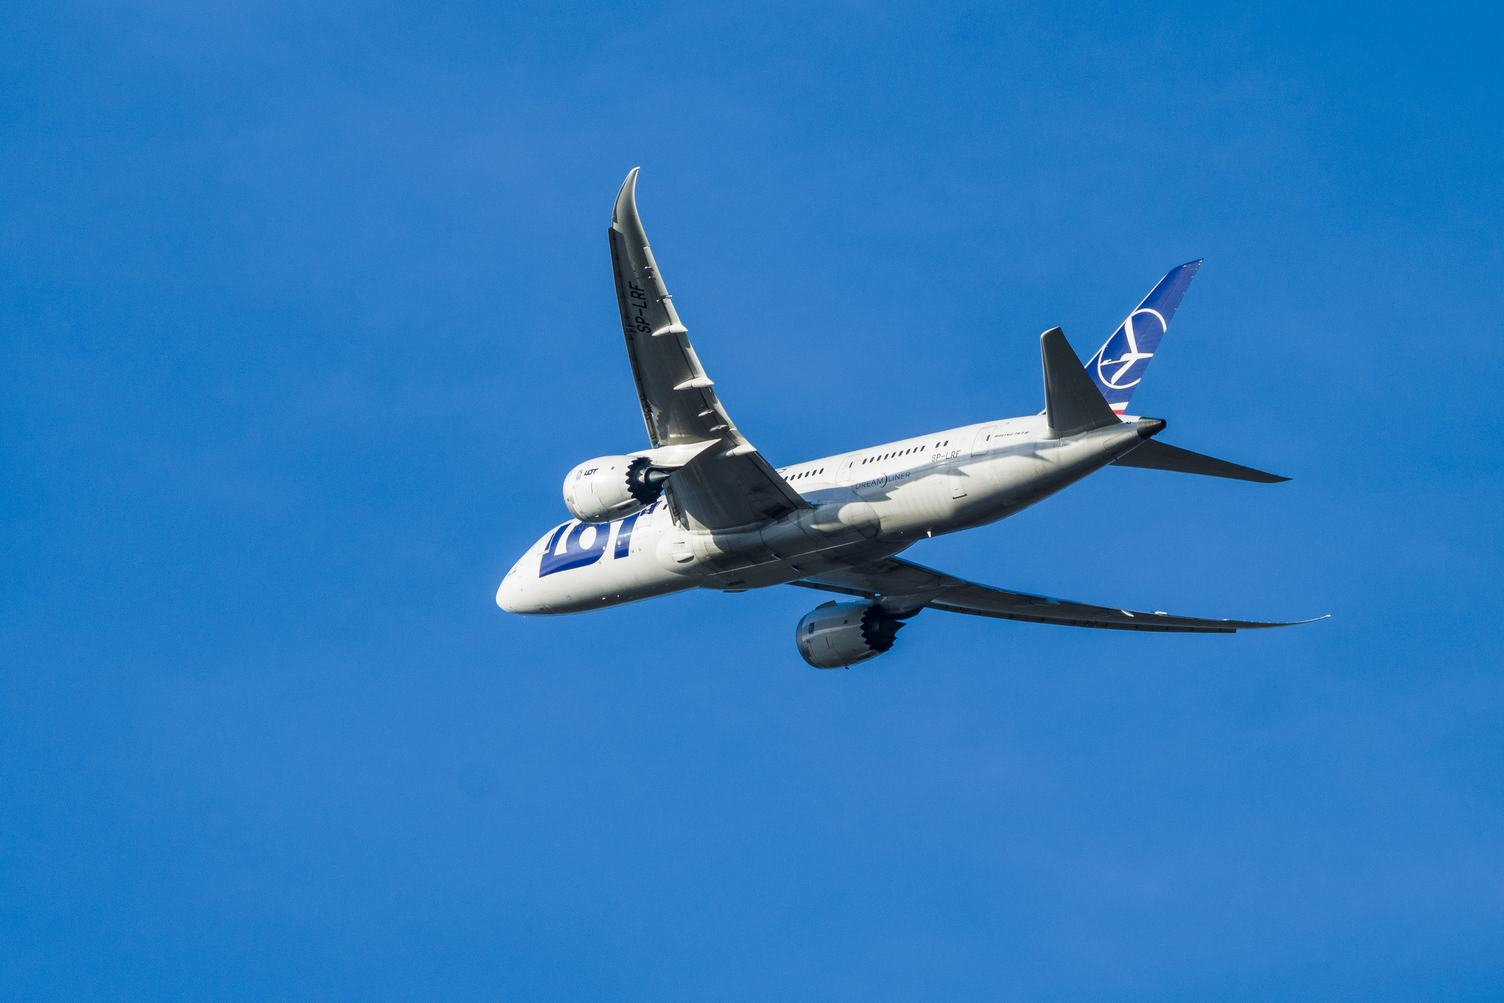 LOT Polish Airlines Boeing 787 Dreamliner in the Blue Sky